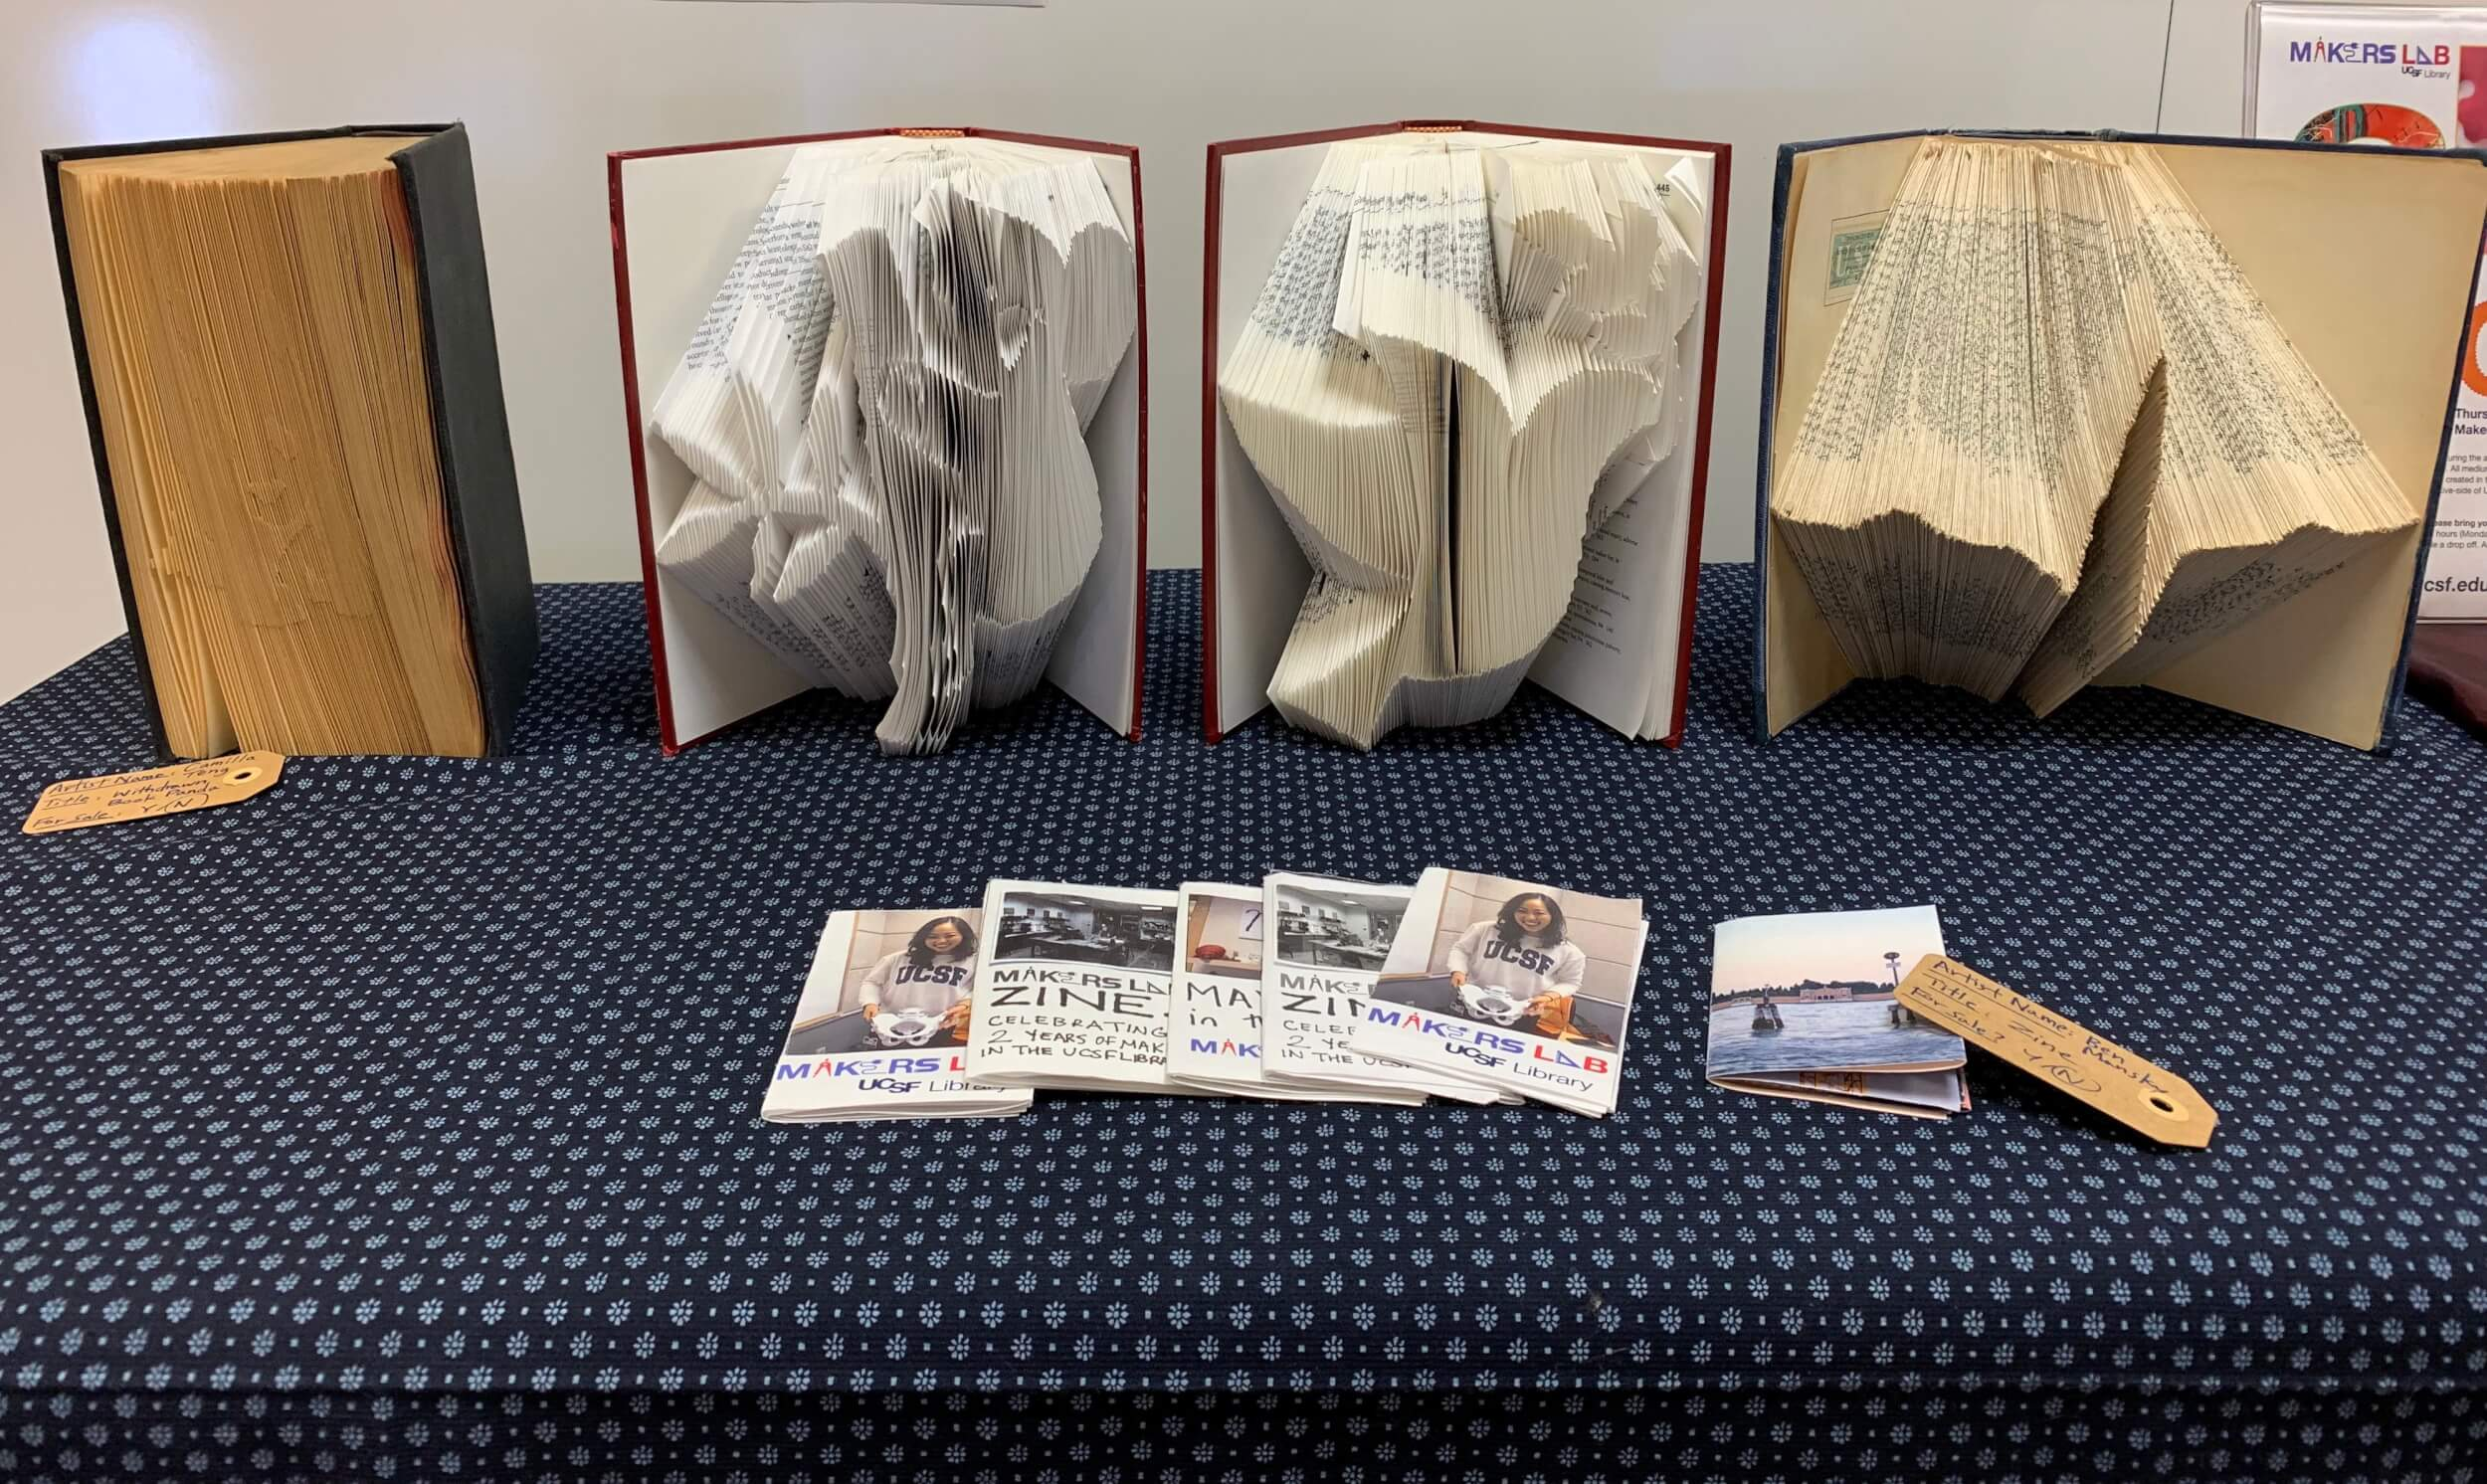 bookfolding projects and zines